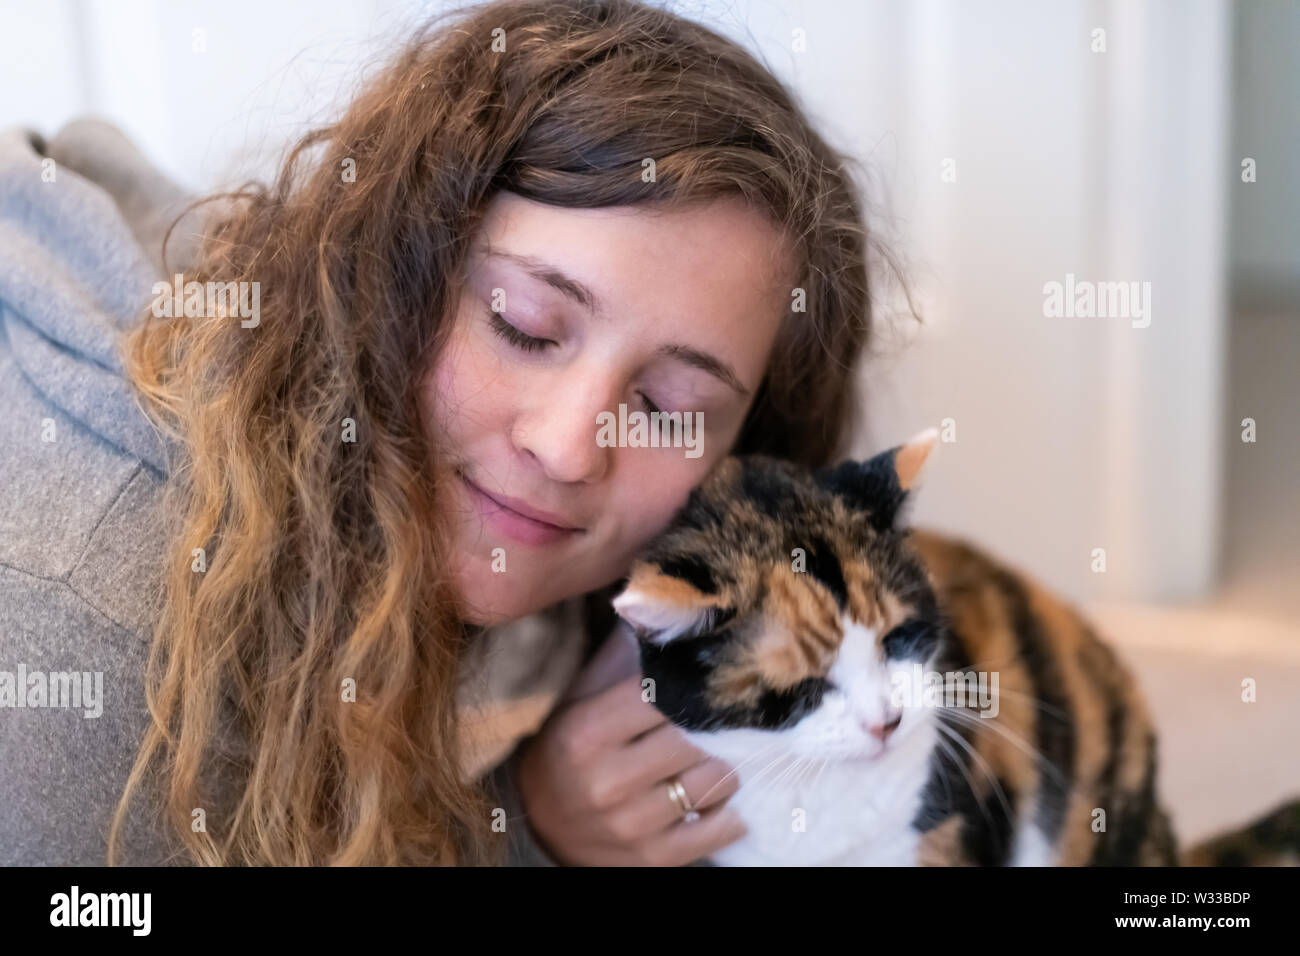 Closeup portrait of happy smiling young woman bonding with calico cat pet companion, bumping rubbing bunting heads, friends showing affection - Stock Image